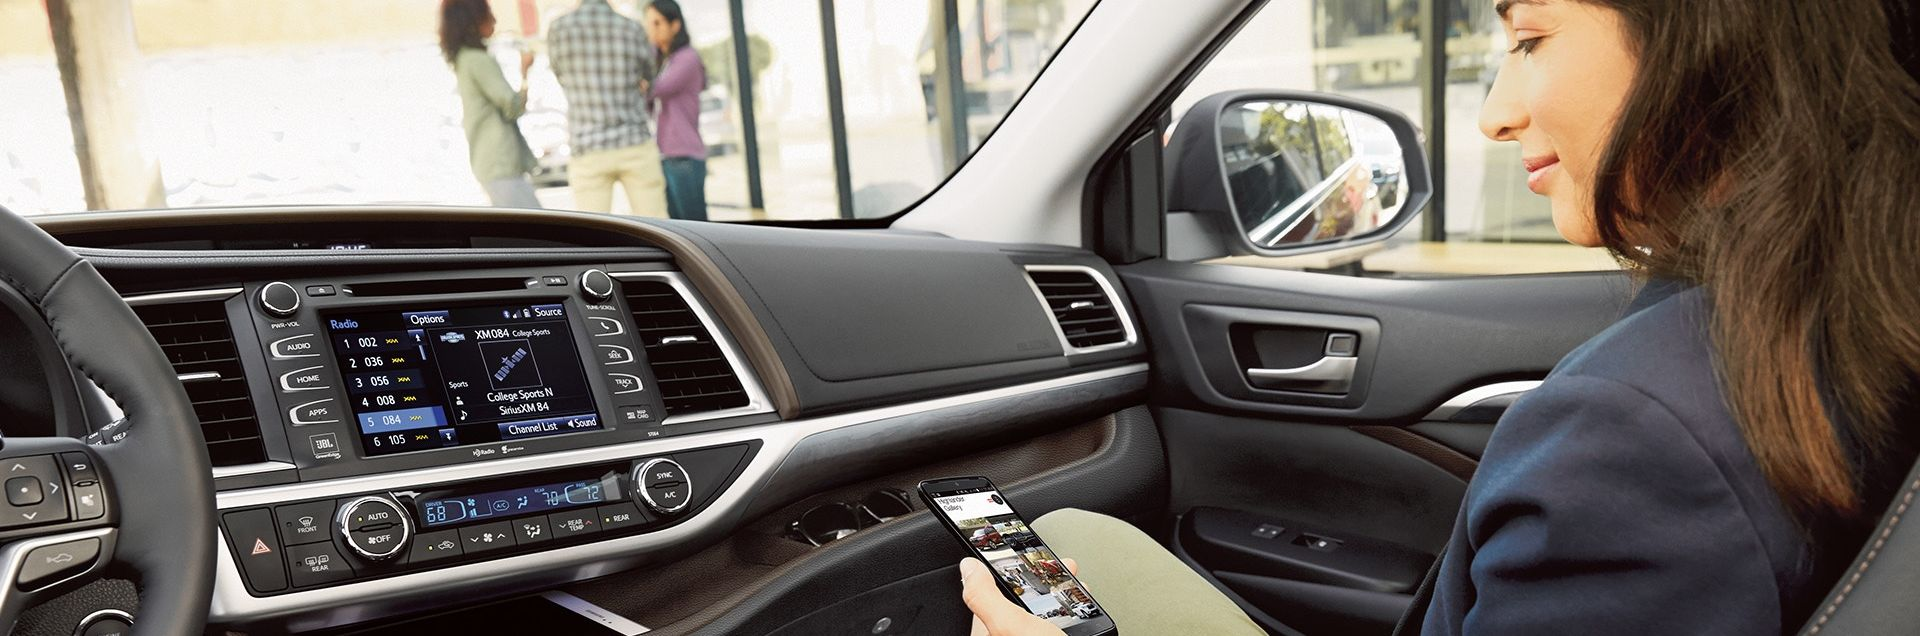 Stay Connected in the Toyota Highlander